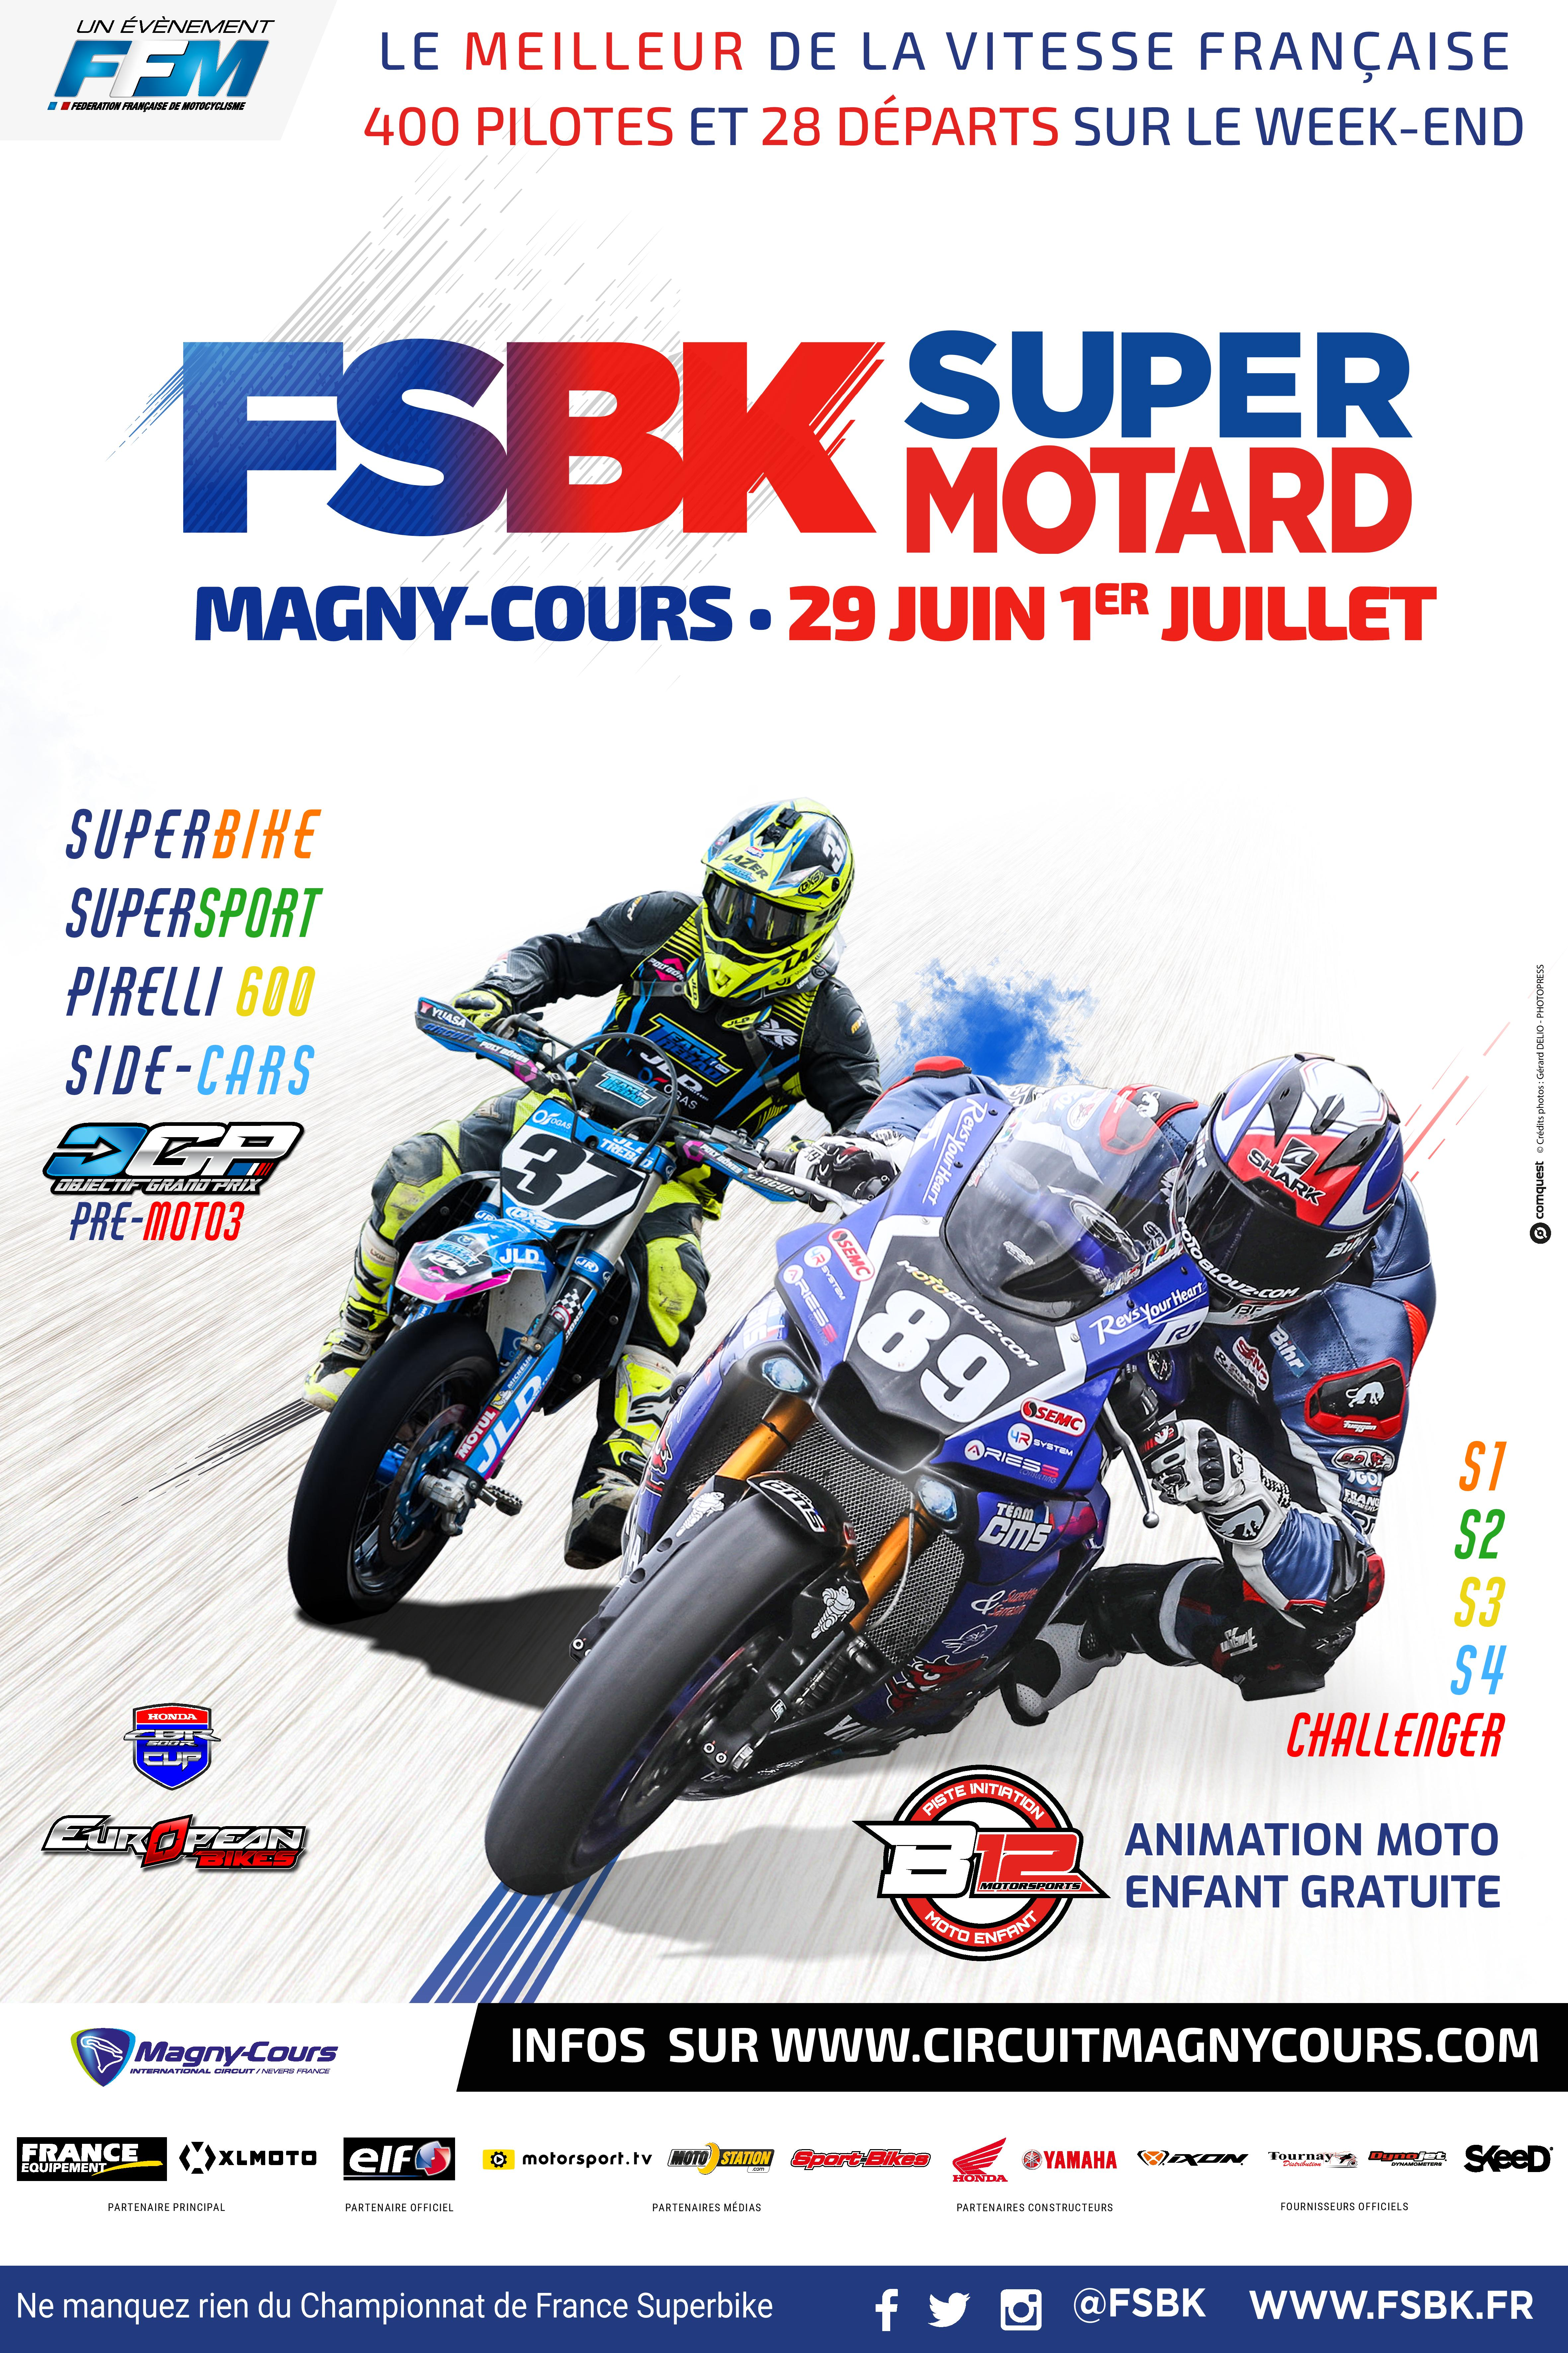 https://www.circuitmagnycours.com/wp-content/uploads/2016/11/FFM_FSBK_2018_40x60_MAGNY_COURS-page-001-1.jpg